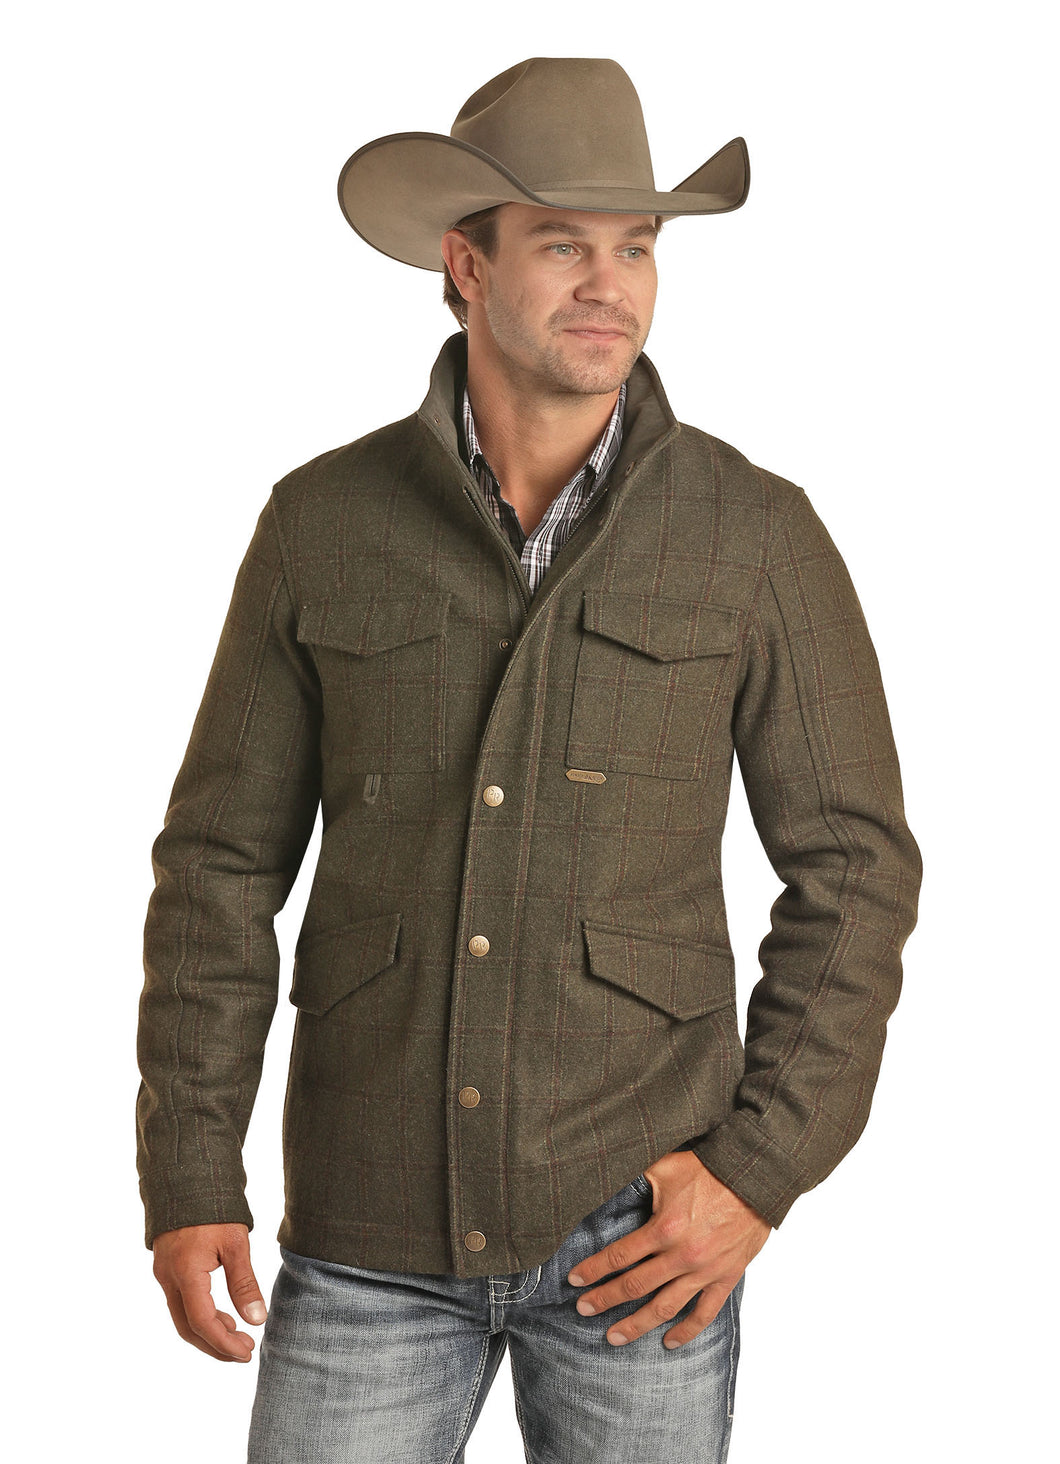 'Powder River' Men's Heather Plaid Wool Jacket - Olive Heather